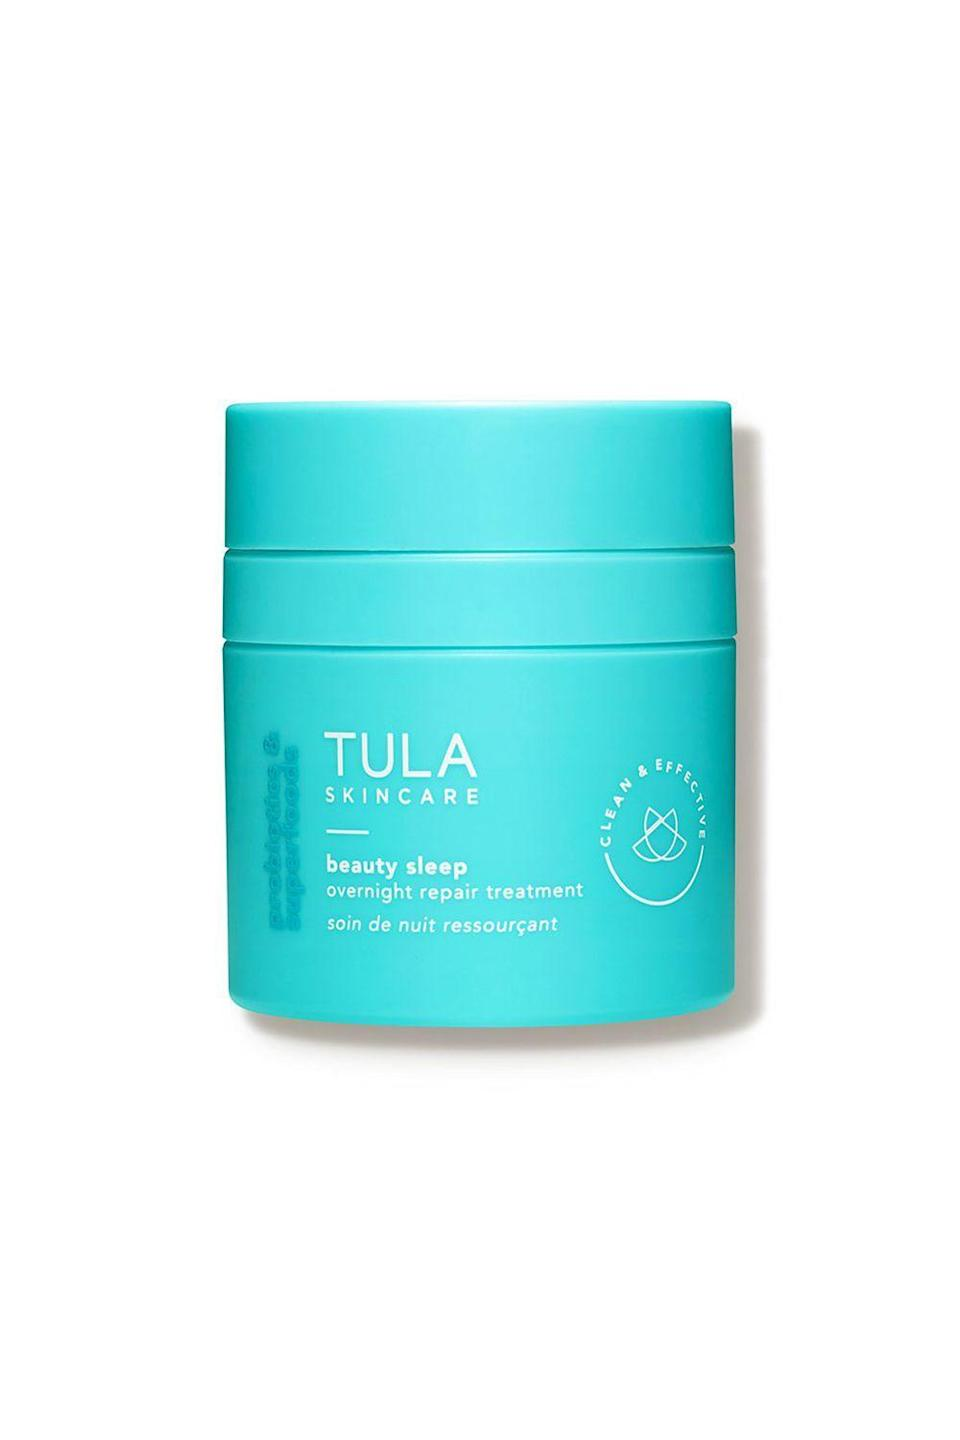 """<p><strong>Tula Skincare</strong></p><p>dermstore.com</p><p><strong>$64.00</strong></p><p><a href=""""https://go.redirectingat.com?id=74968X1596630&url=https%3A%2F%2Fwww.dermstore.com%2Fproduct_Beauty%2BSleep%2BOvernight%2BSkin%2BRepair%2BTreatment_69777.htm&sref=https%3A%2F%2Fwww.oprahdaily.com%2Fbeauty%2Fg28640223%2Fbest-night-cream%2F"""" rel=""""nofollow noopener"""" target=""""_blank"""" data-ylk=""""slk:Shop Now"""" class=""""link rapid-noclick-resp"""">Shop Now</a></p><p>What you won't find in this dreamy night treatment: Parabens, sulfates, phthalates, or formaldehyde—all of which can irritate sensitive skin. What you will find: A potent mix of vitamin C (to even skin tone) lactic and glycolic acids (to increase cell turnover and reduce the appearance of fine lines), and three probiotic strains (to moisturize), so you'll wake up with healthier, more hydrated skin.</p>"""